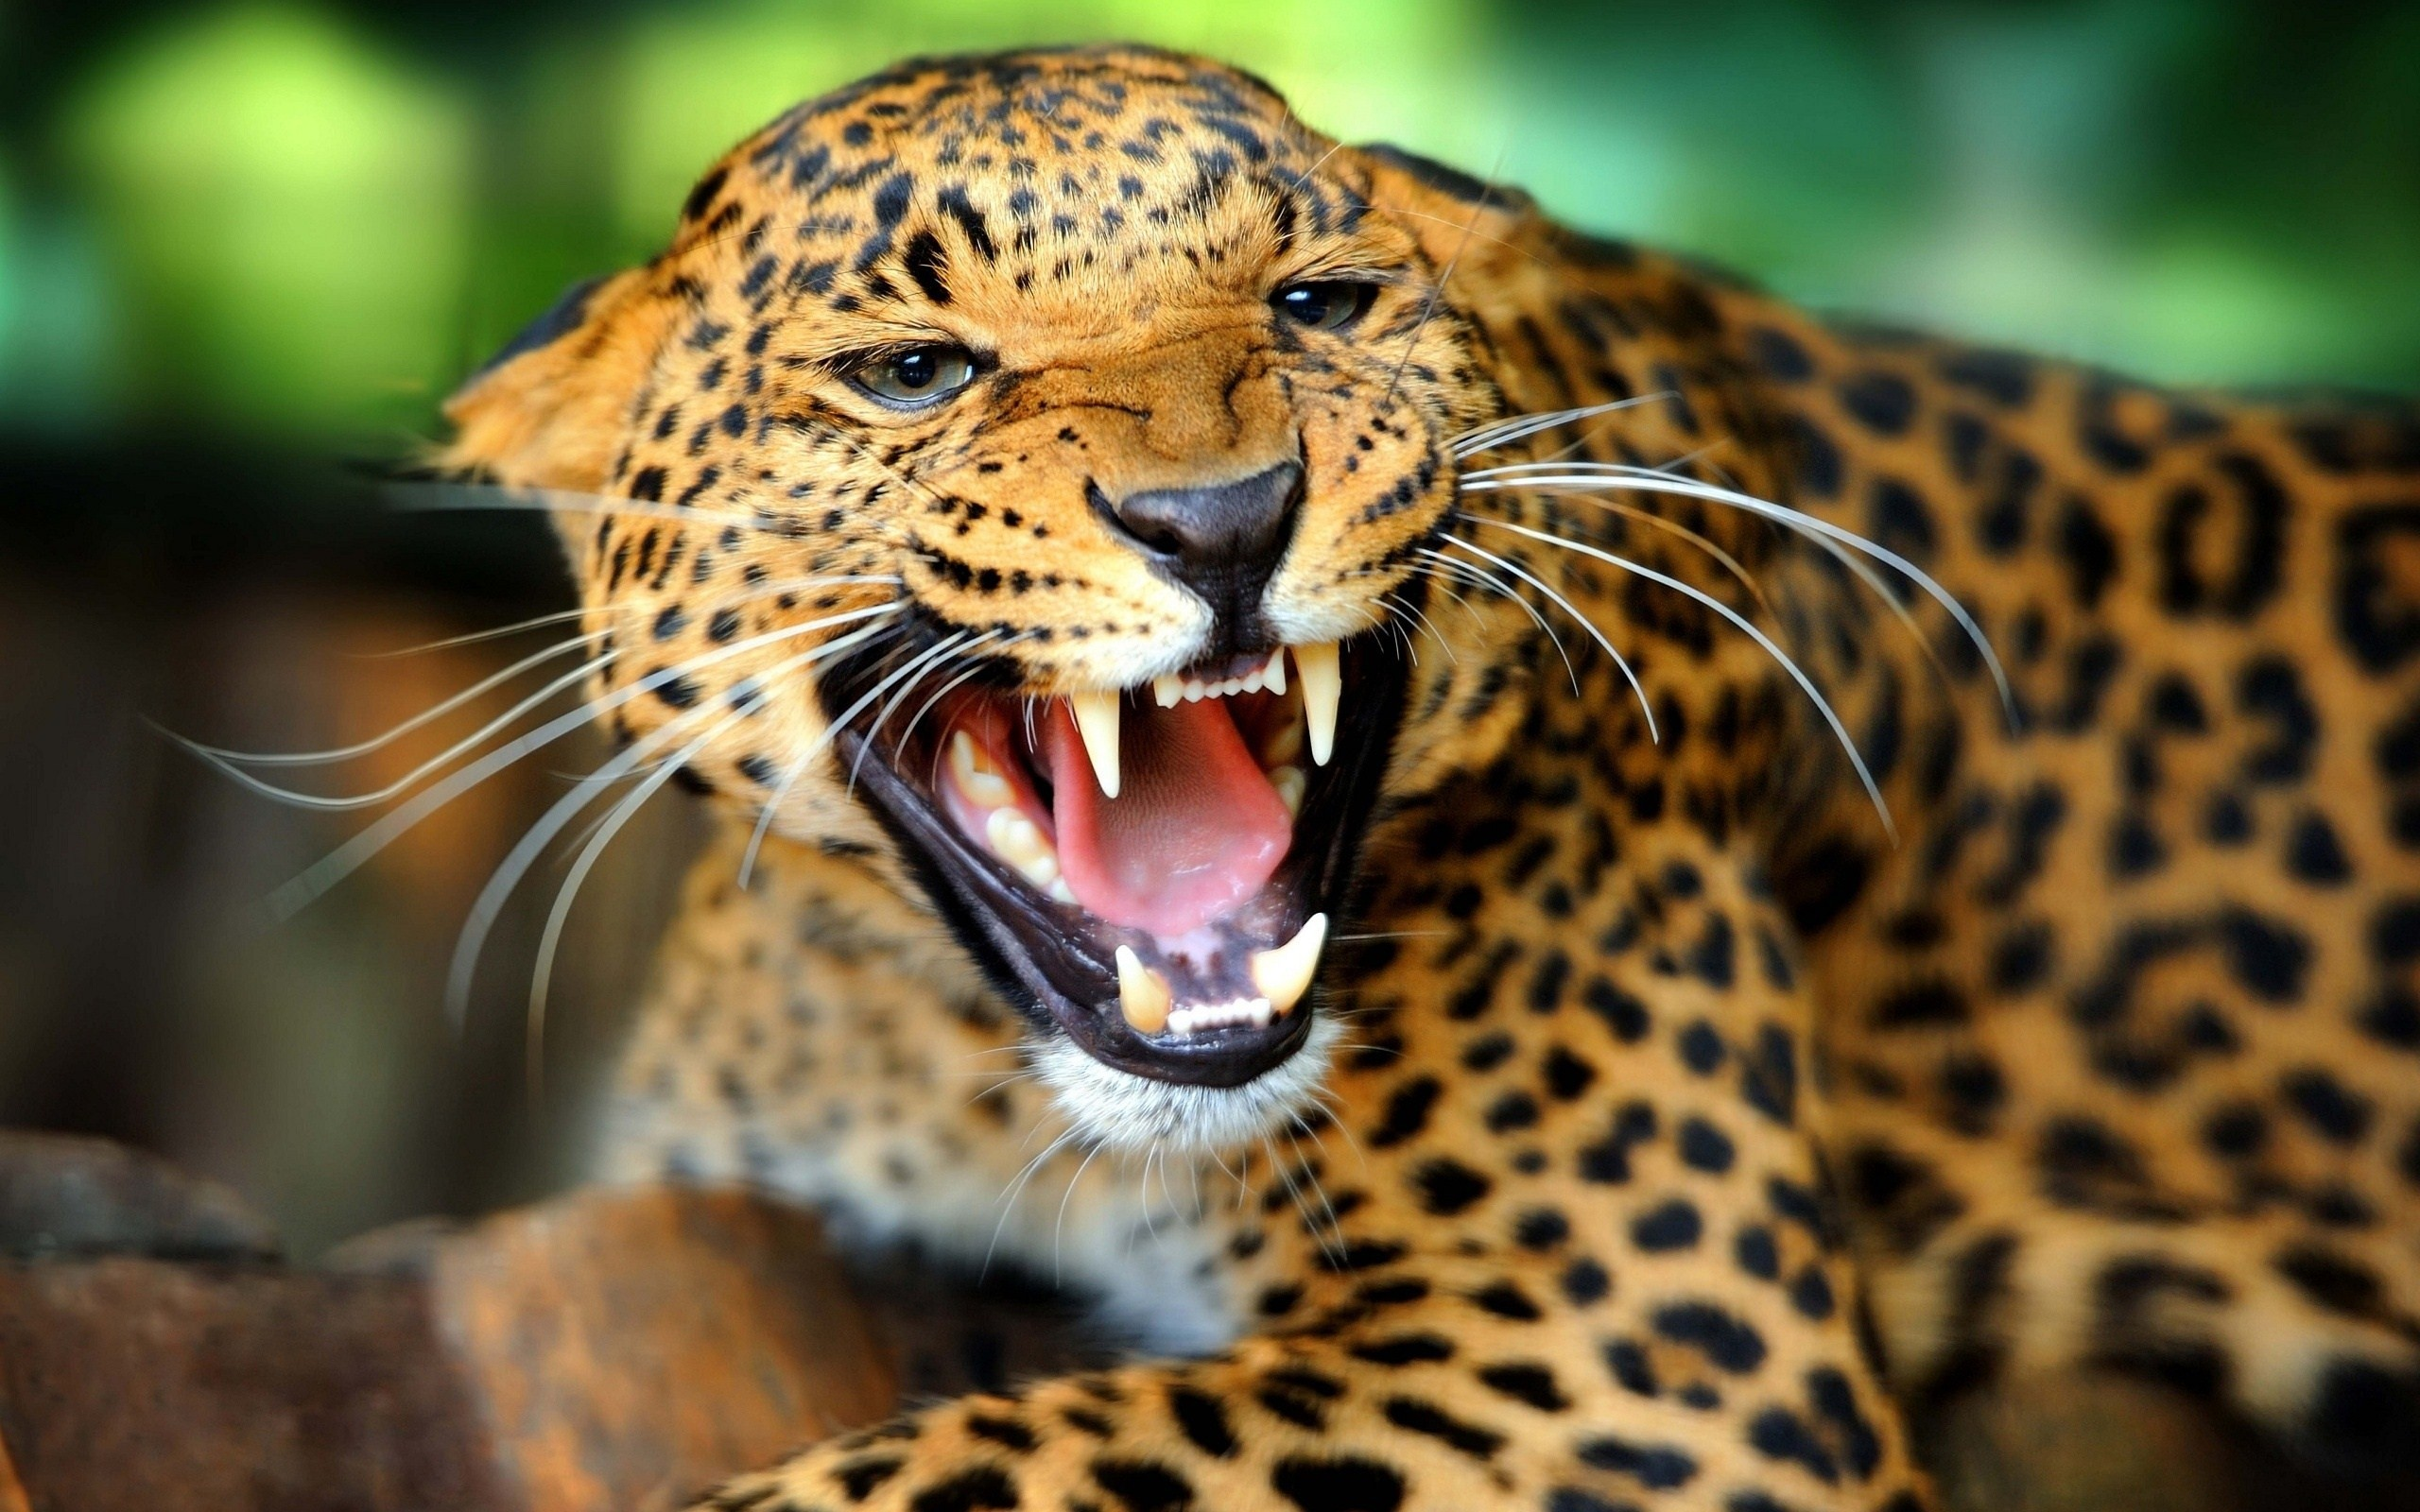 Cool Wild Animal Wallpapers Wide For Desktop Wallpaper 2560 x 1600 px 1.2  MB anime light